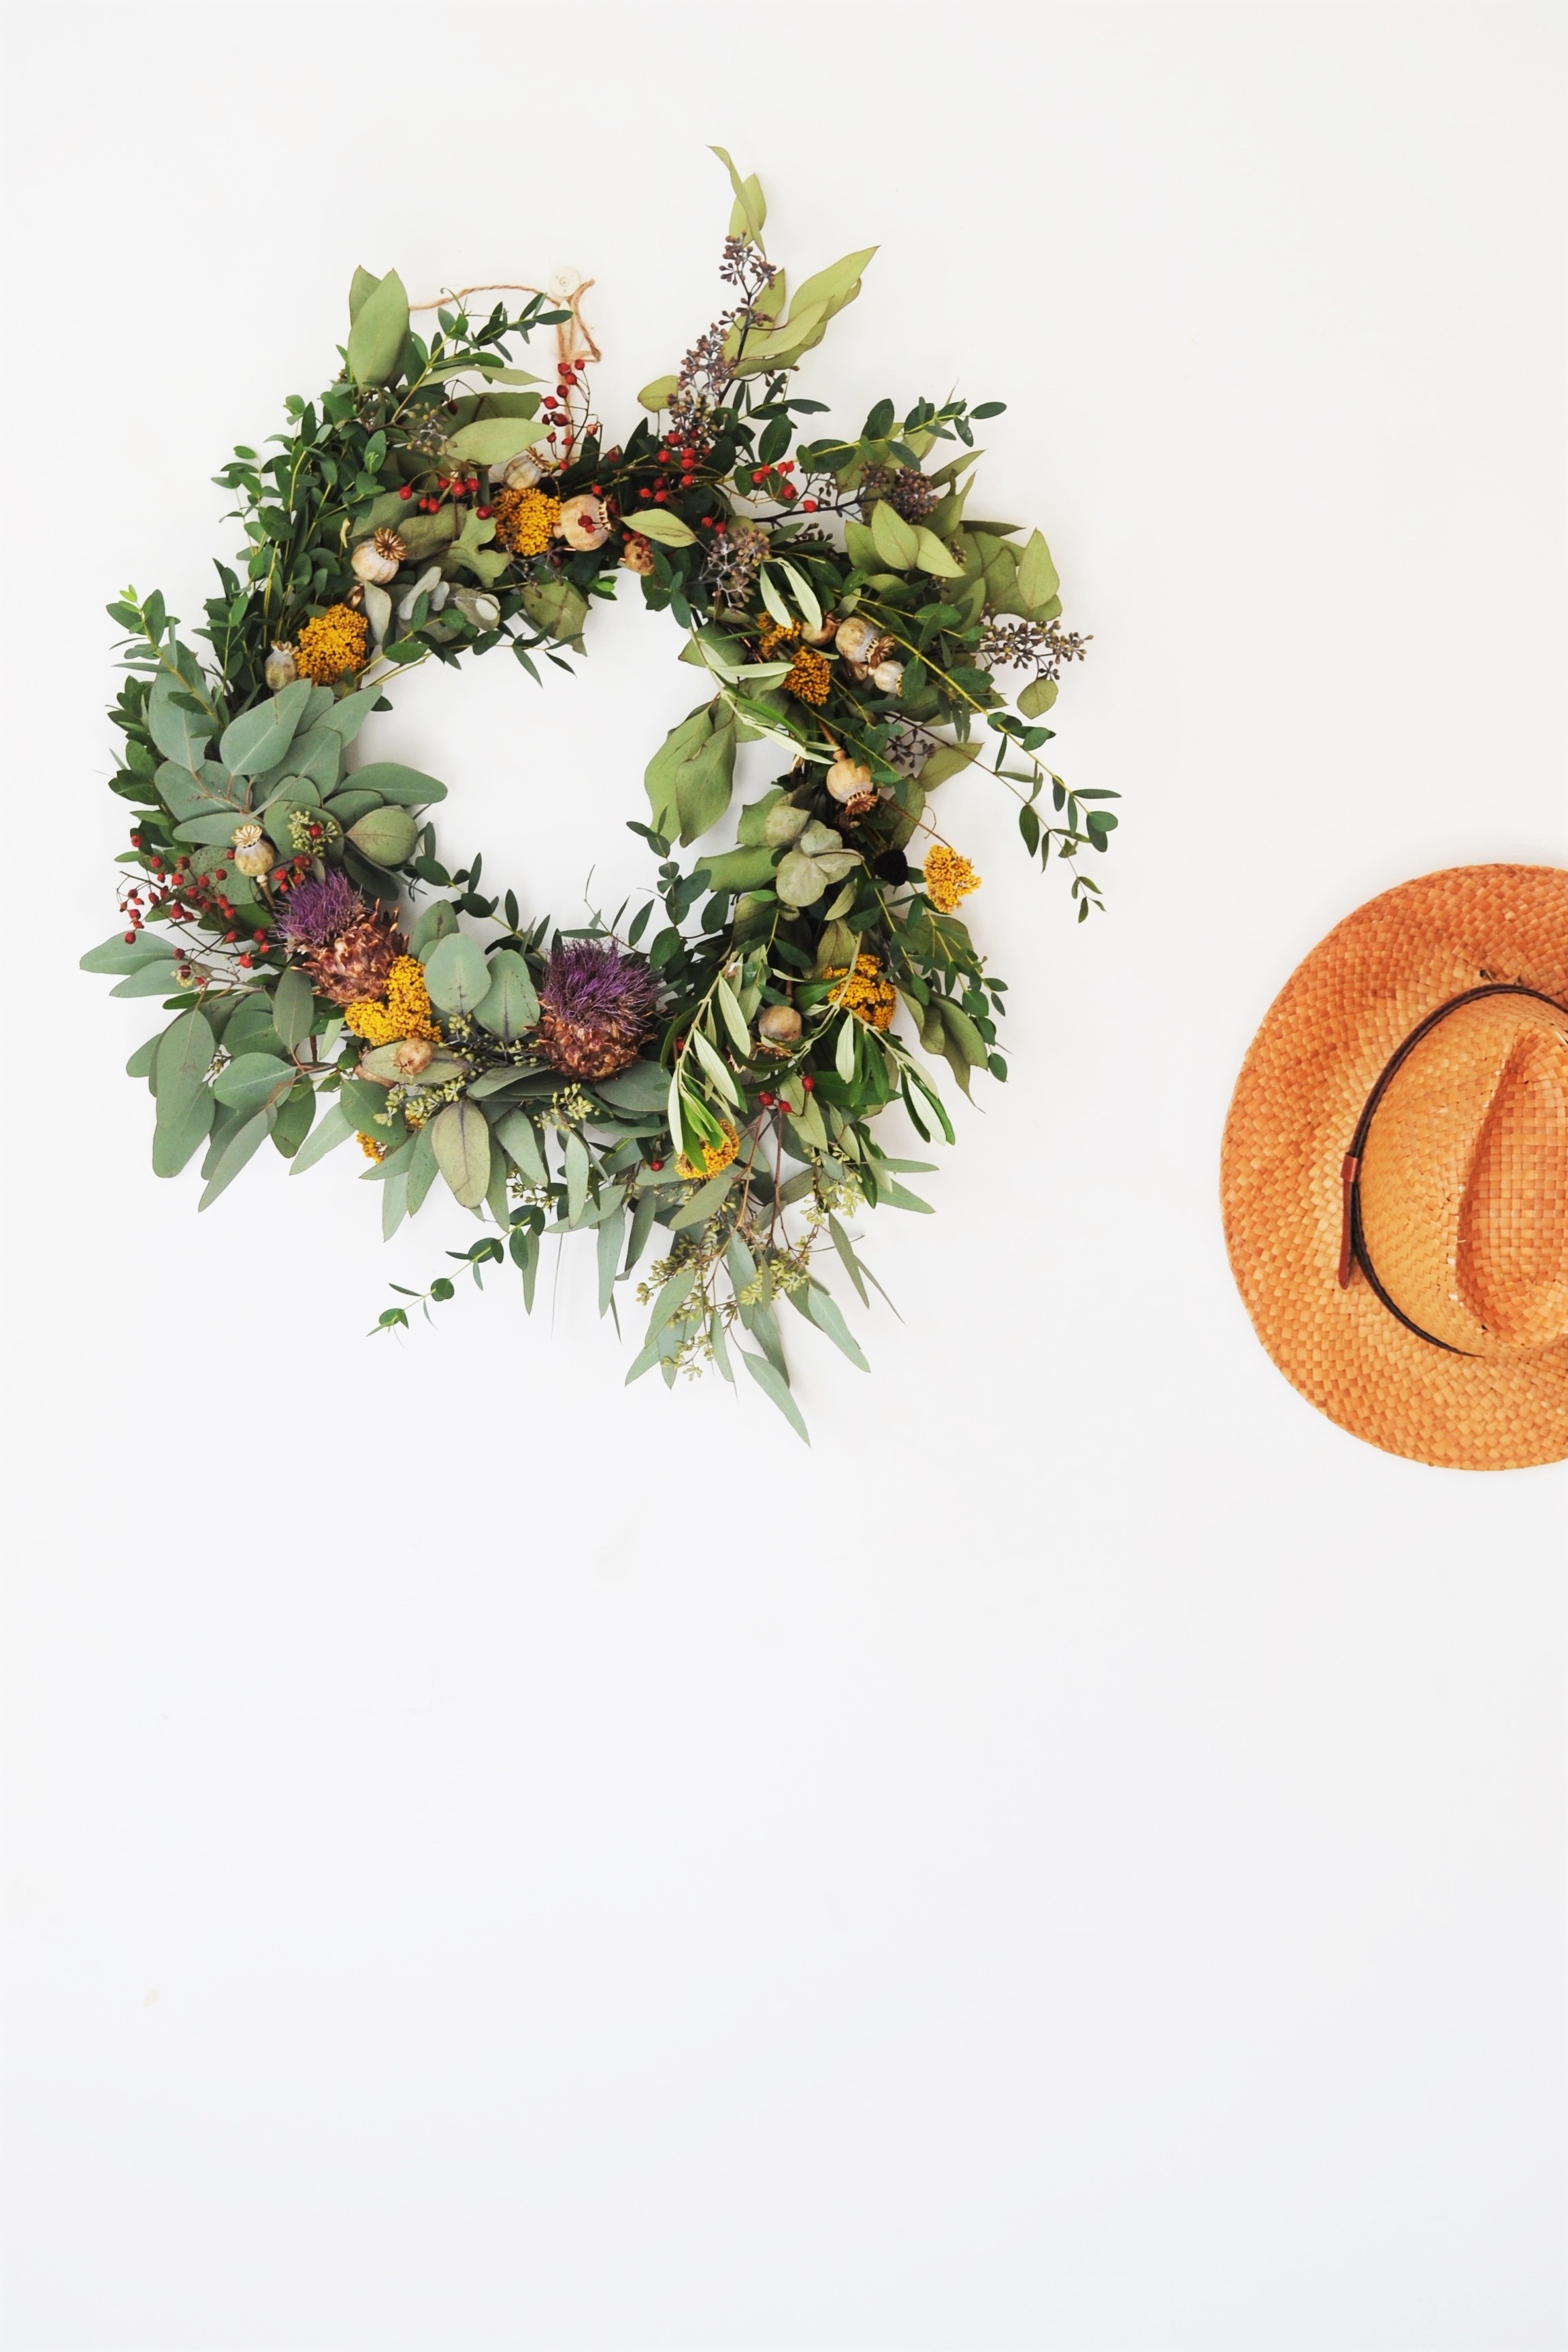 How-to-make-an-autumn-wreath-webb-and-farrer-brighton-flower-workshop (16).JPG